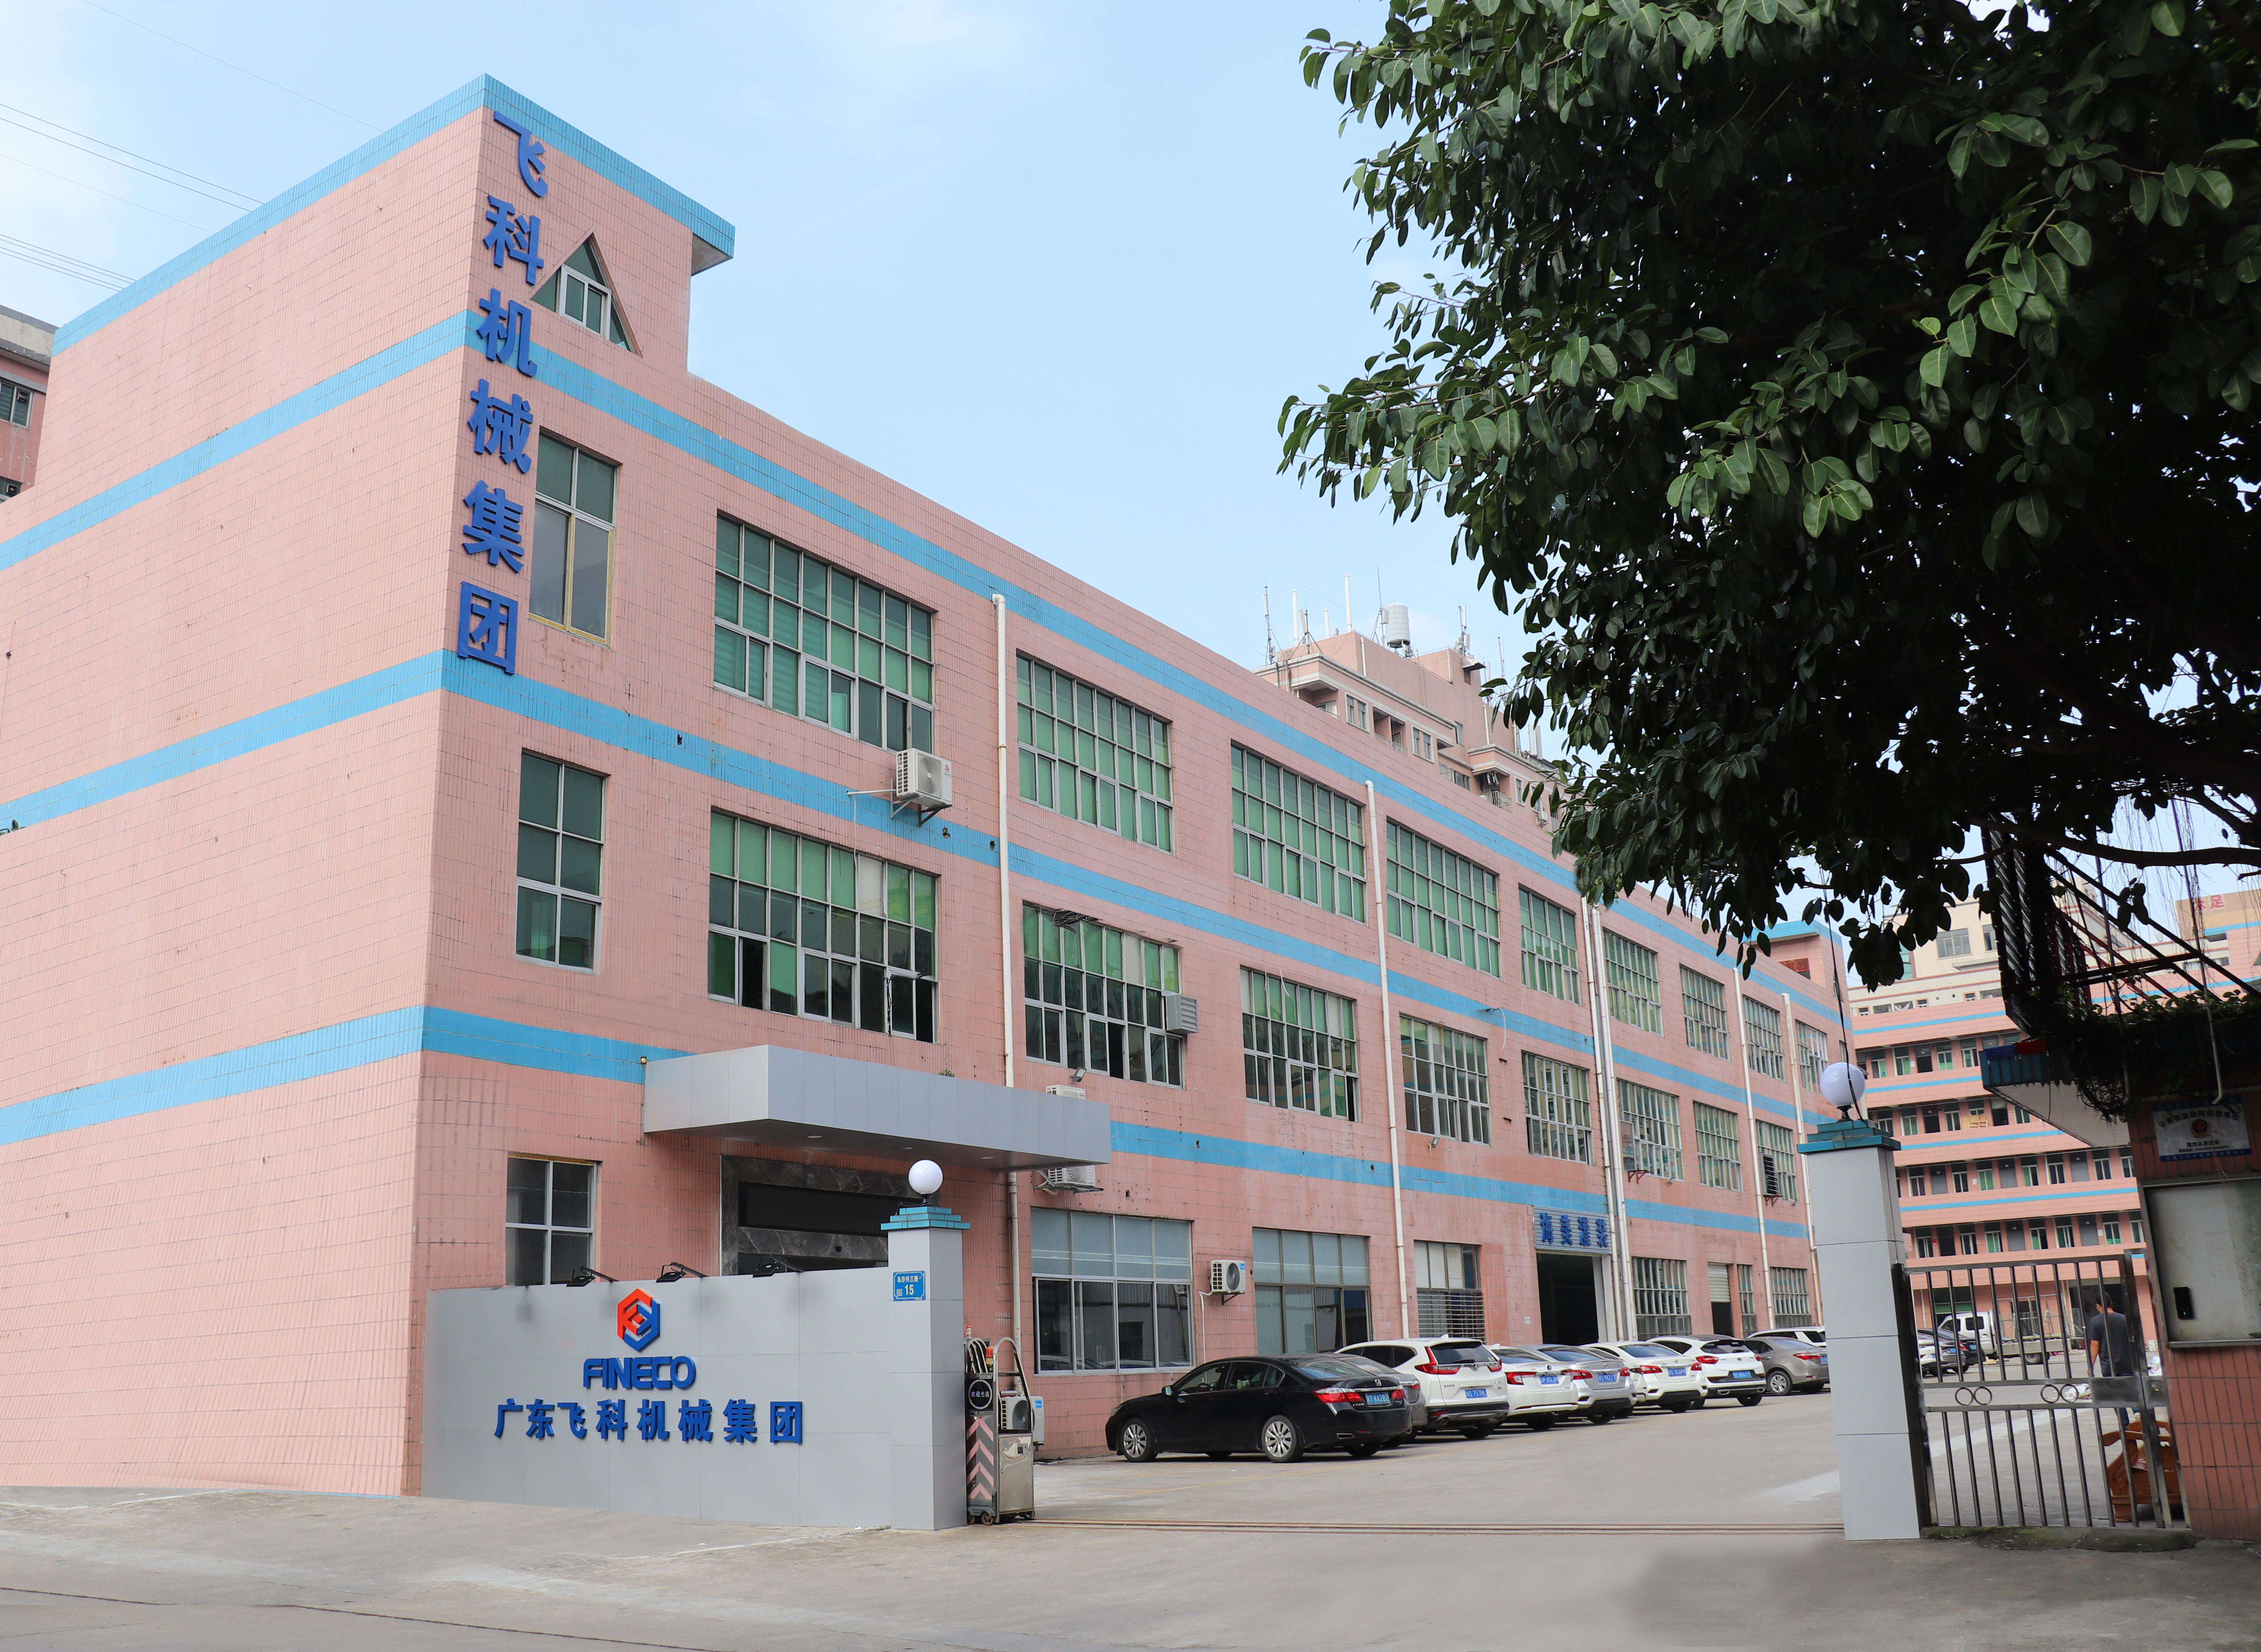 Guangdong Fineco Machinery Group moved to a new location